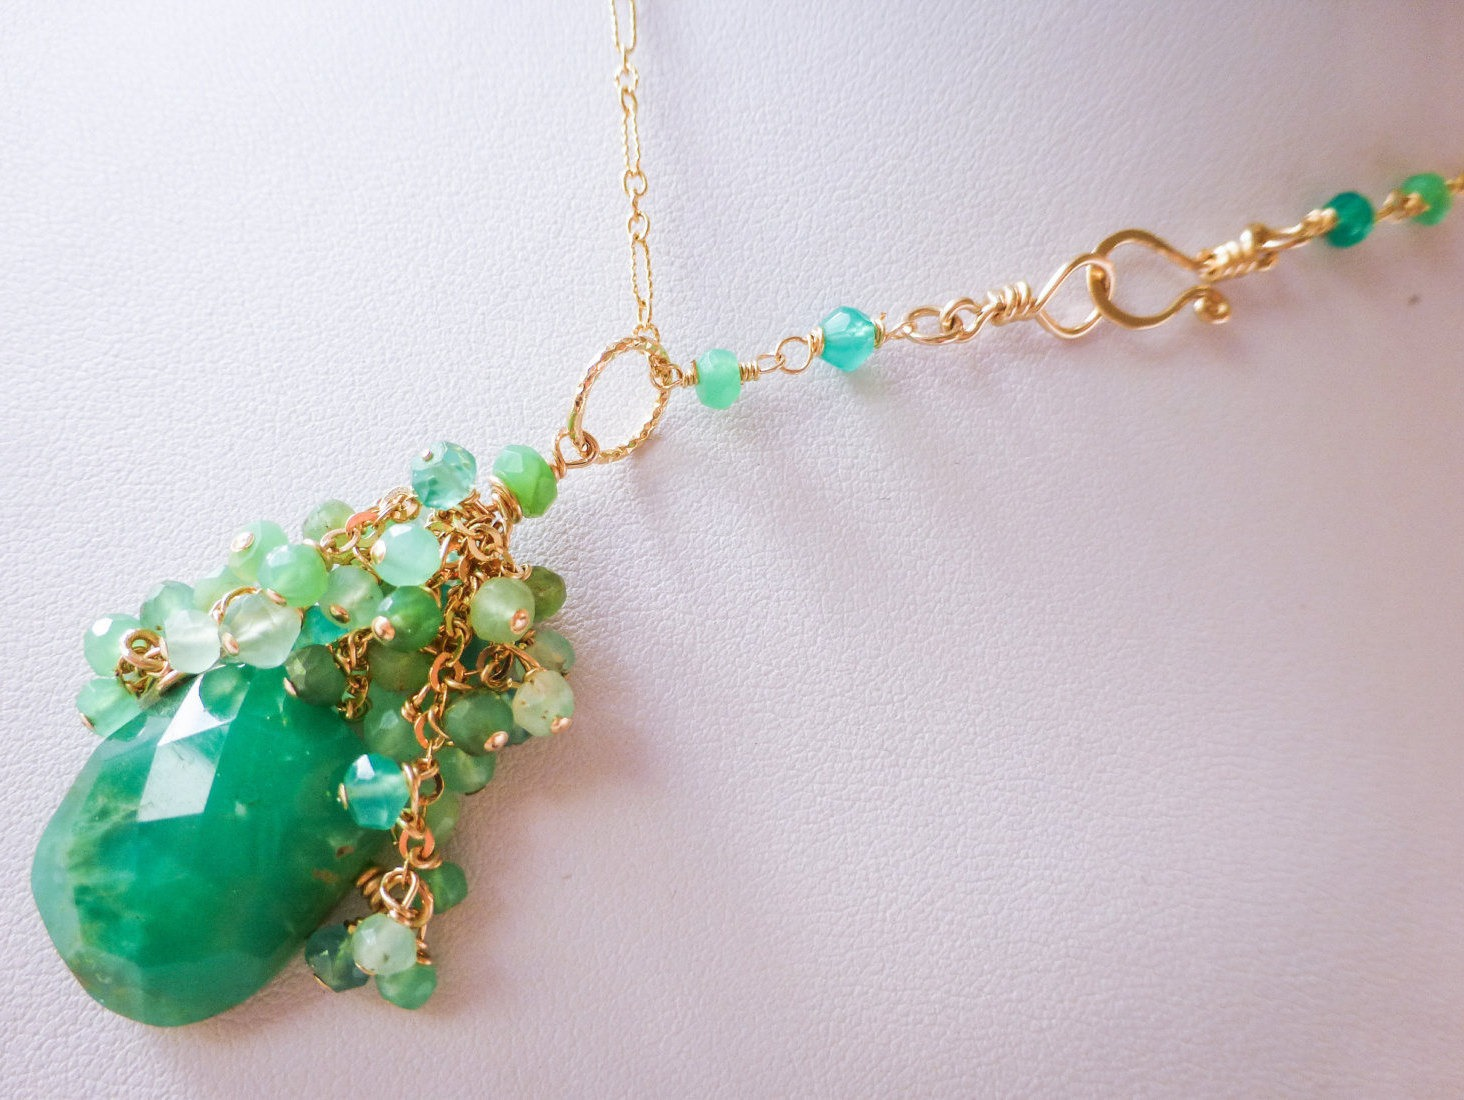 cluster design with filled pendant green sapphires necklace topazes gold and tourmaline in chrysoprase pink